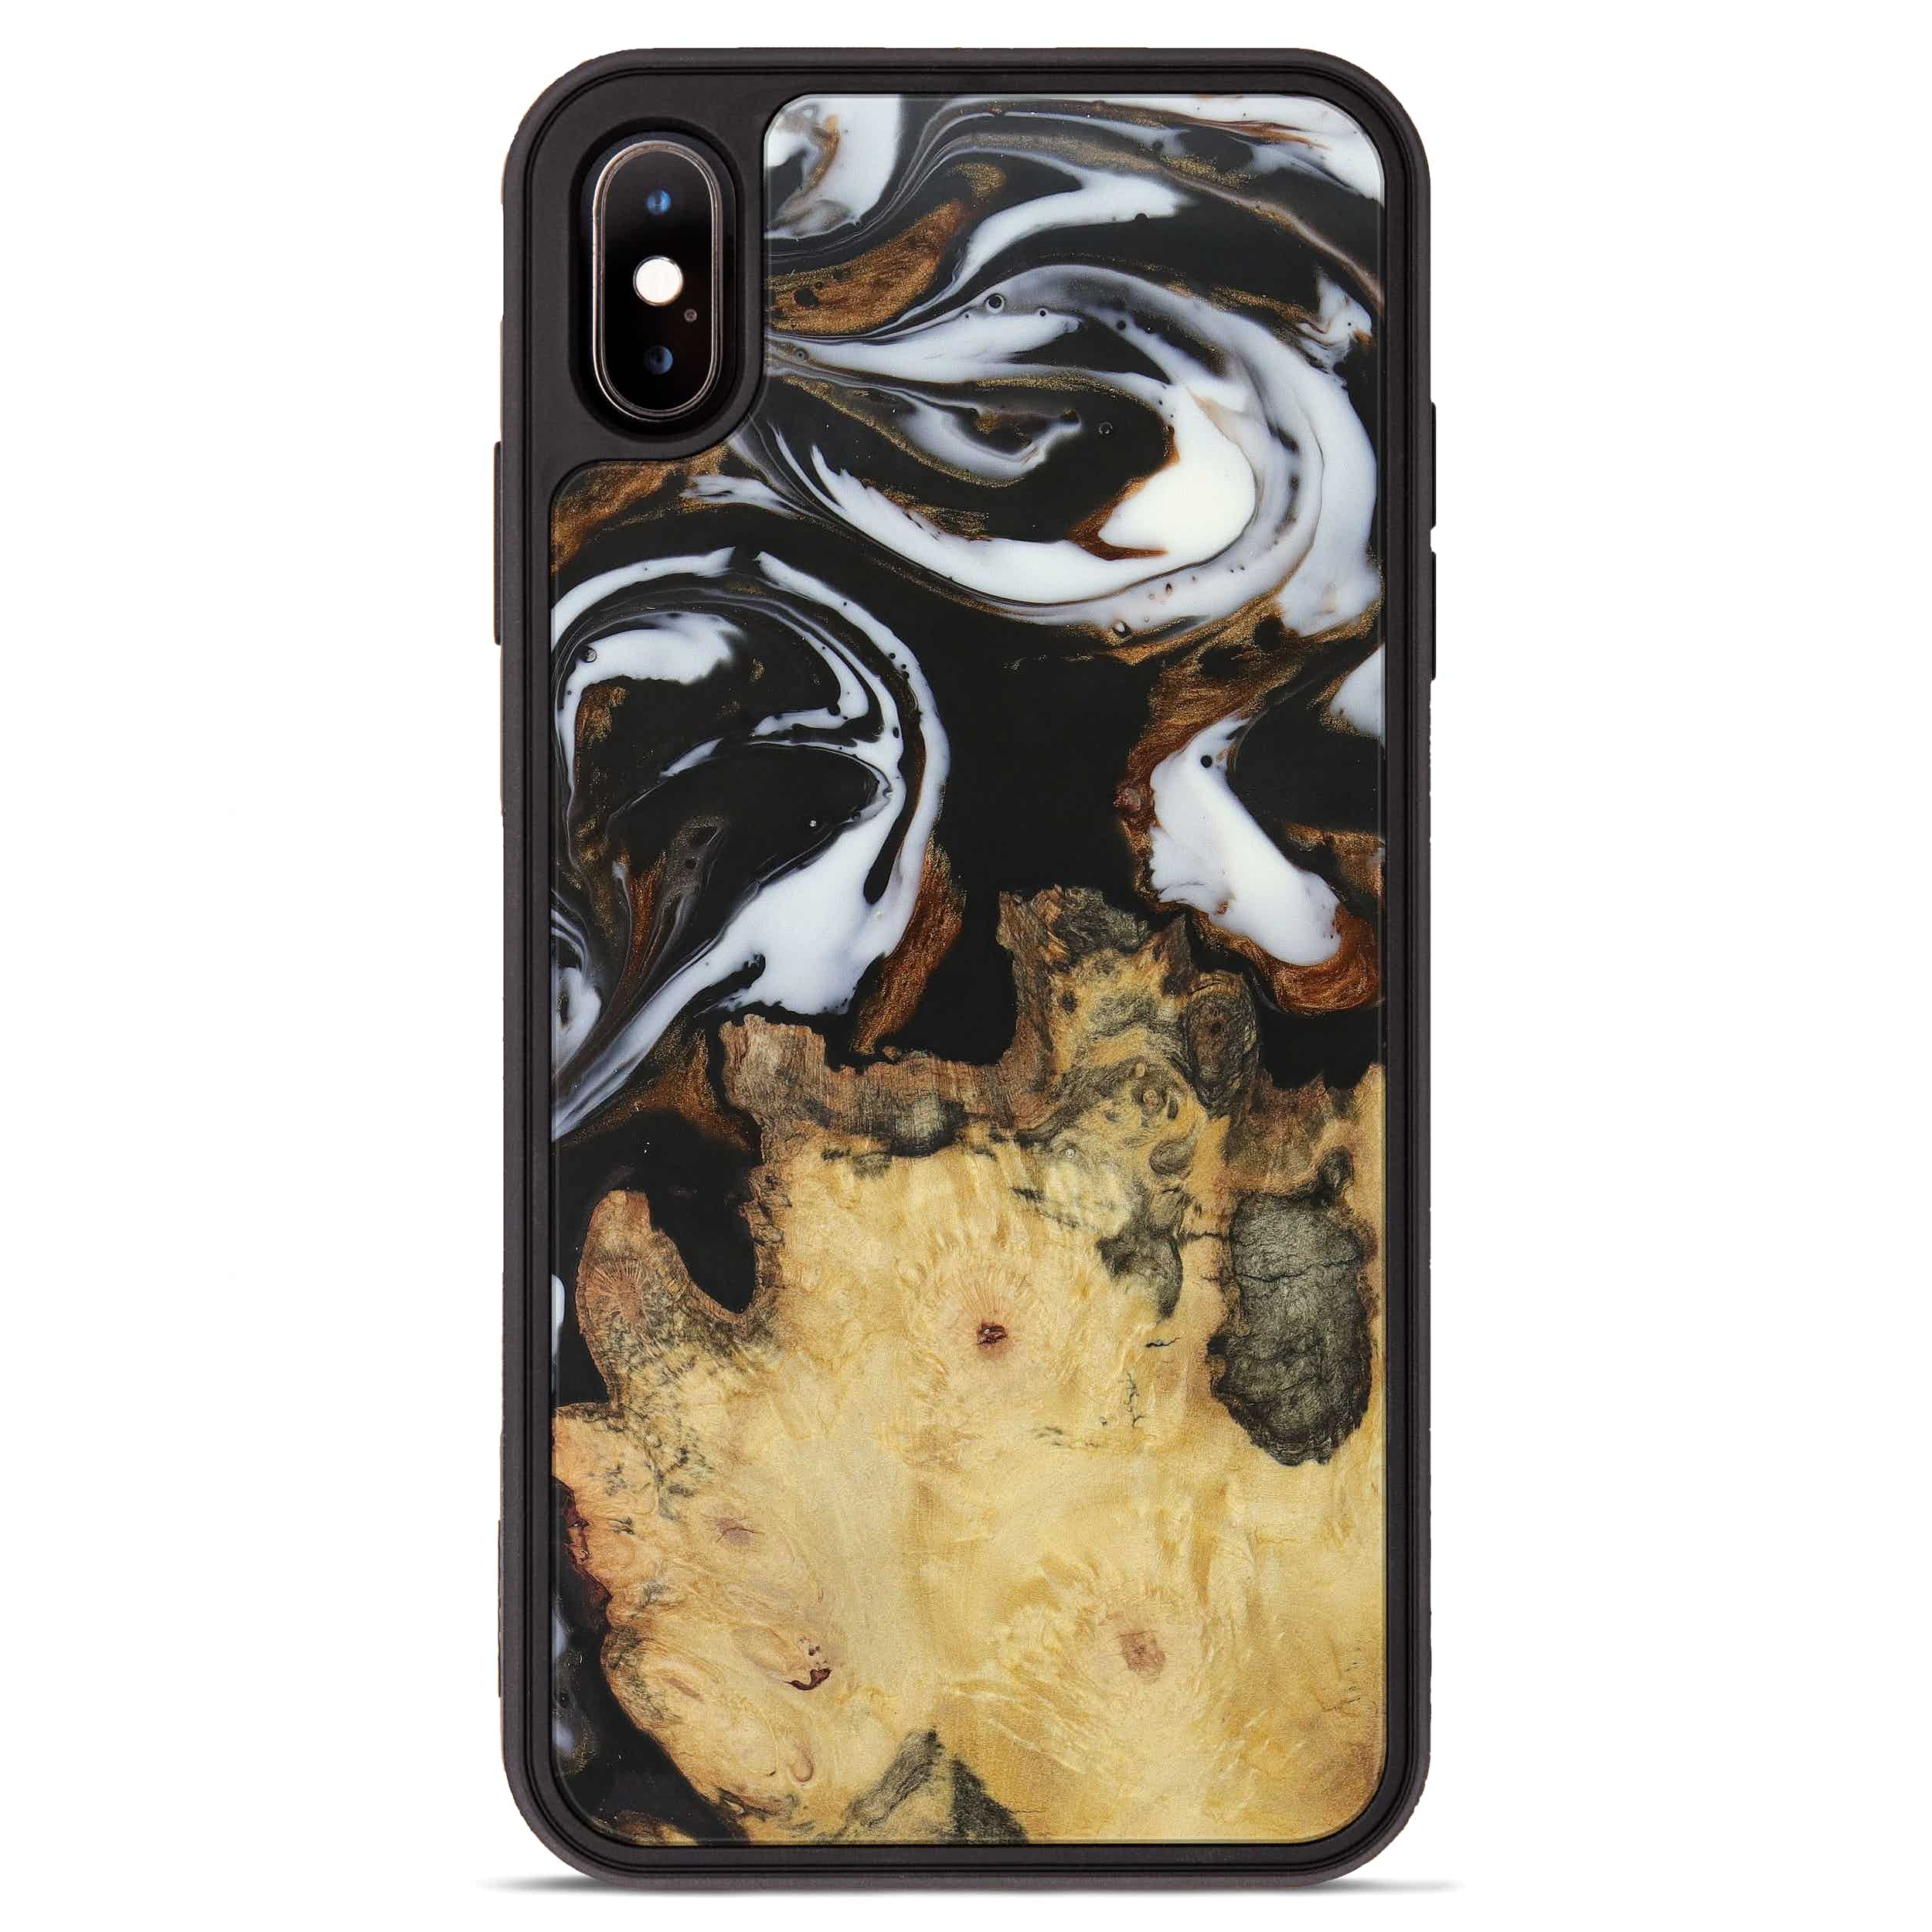 iPhone Xs Max Wood+Resin Phone Case - Cate (Black & White, 390667)